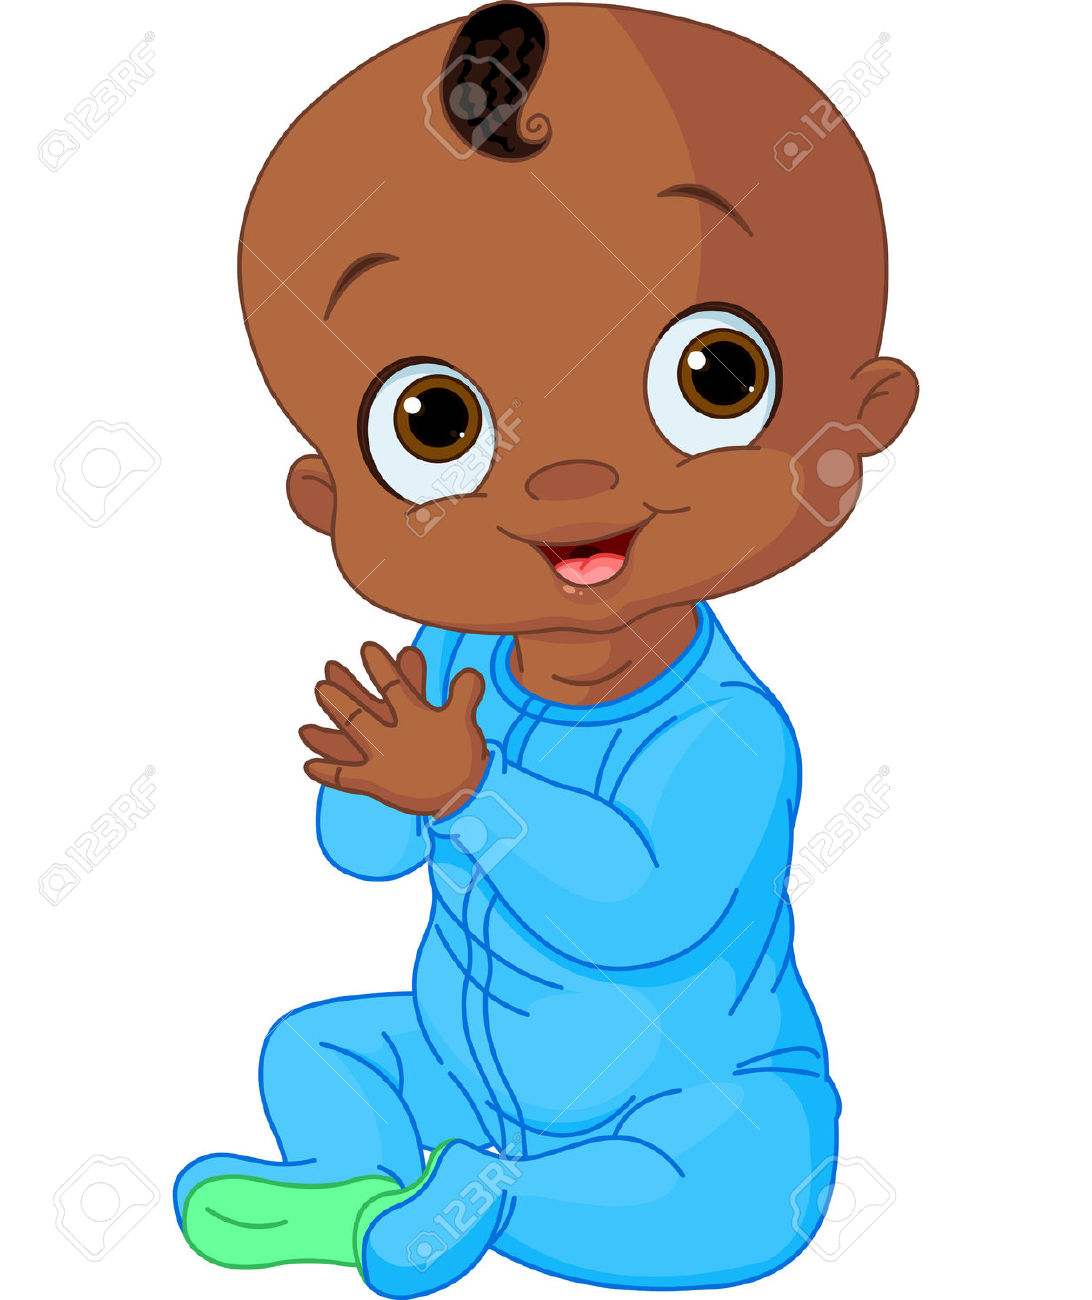 African american sitting on a pillow baby shower clipart vector royalty free stock Cartoon Baby Picture | Free download best Cartoon Baby Picture on ... vector royalty free stock